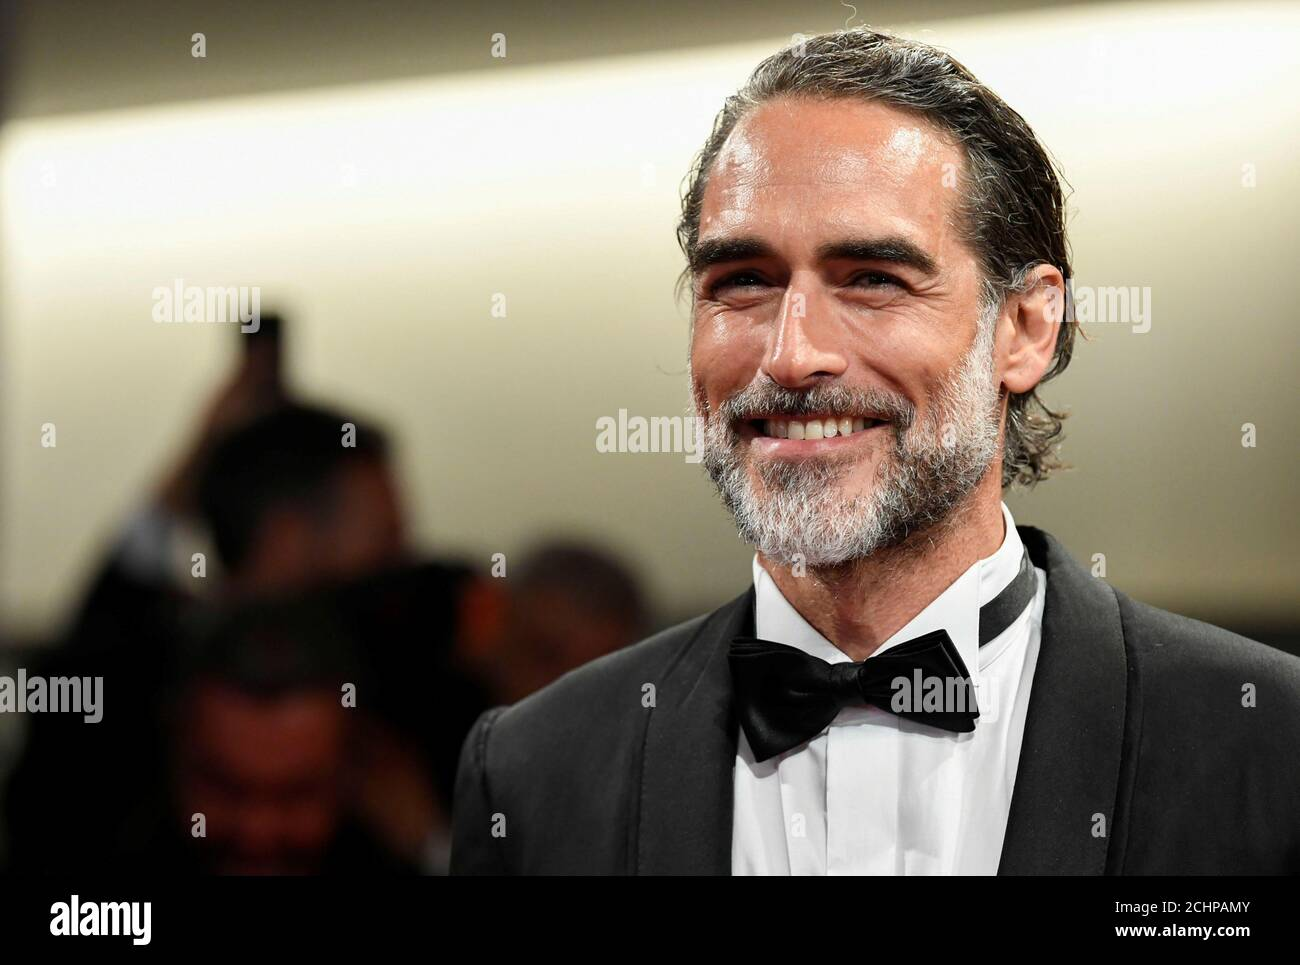 """The 76th Venice Film Festival -Screening of the film """"Waiting for the Barbarians"""" in competition- Red Carpet Arrivals - Venice, Italy, September 6, 2019- Sergio Muniz poses. REUTERS/Piroschka van de Wouw Stock Photo"""